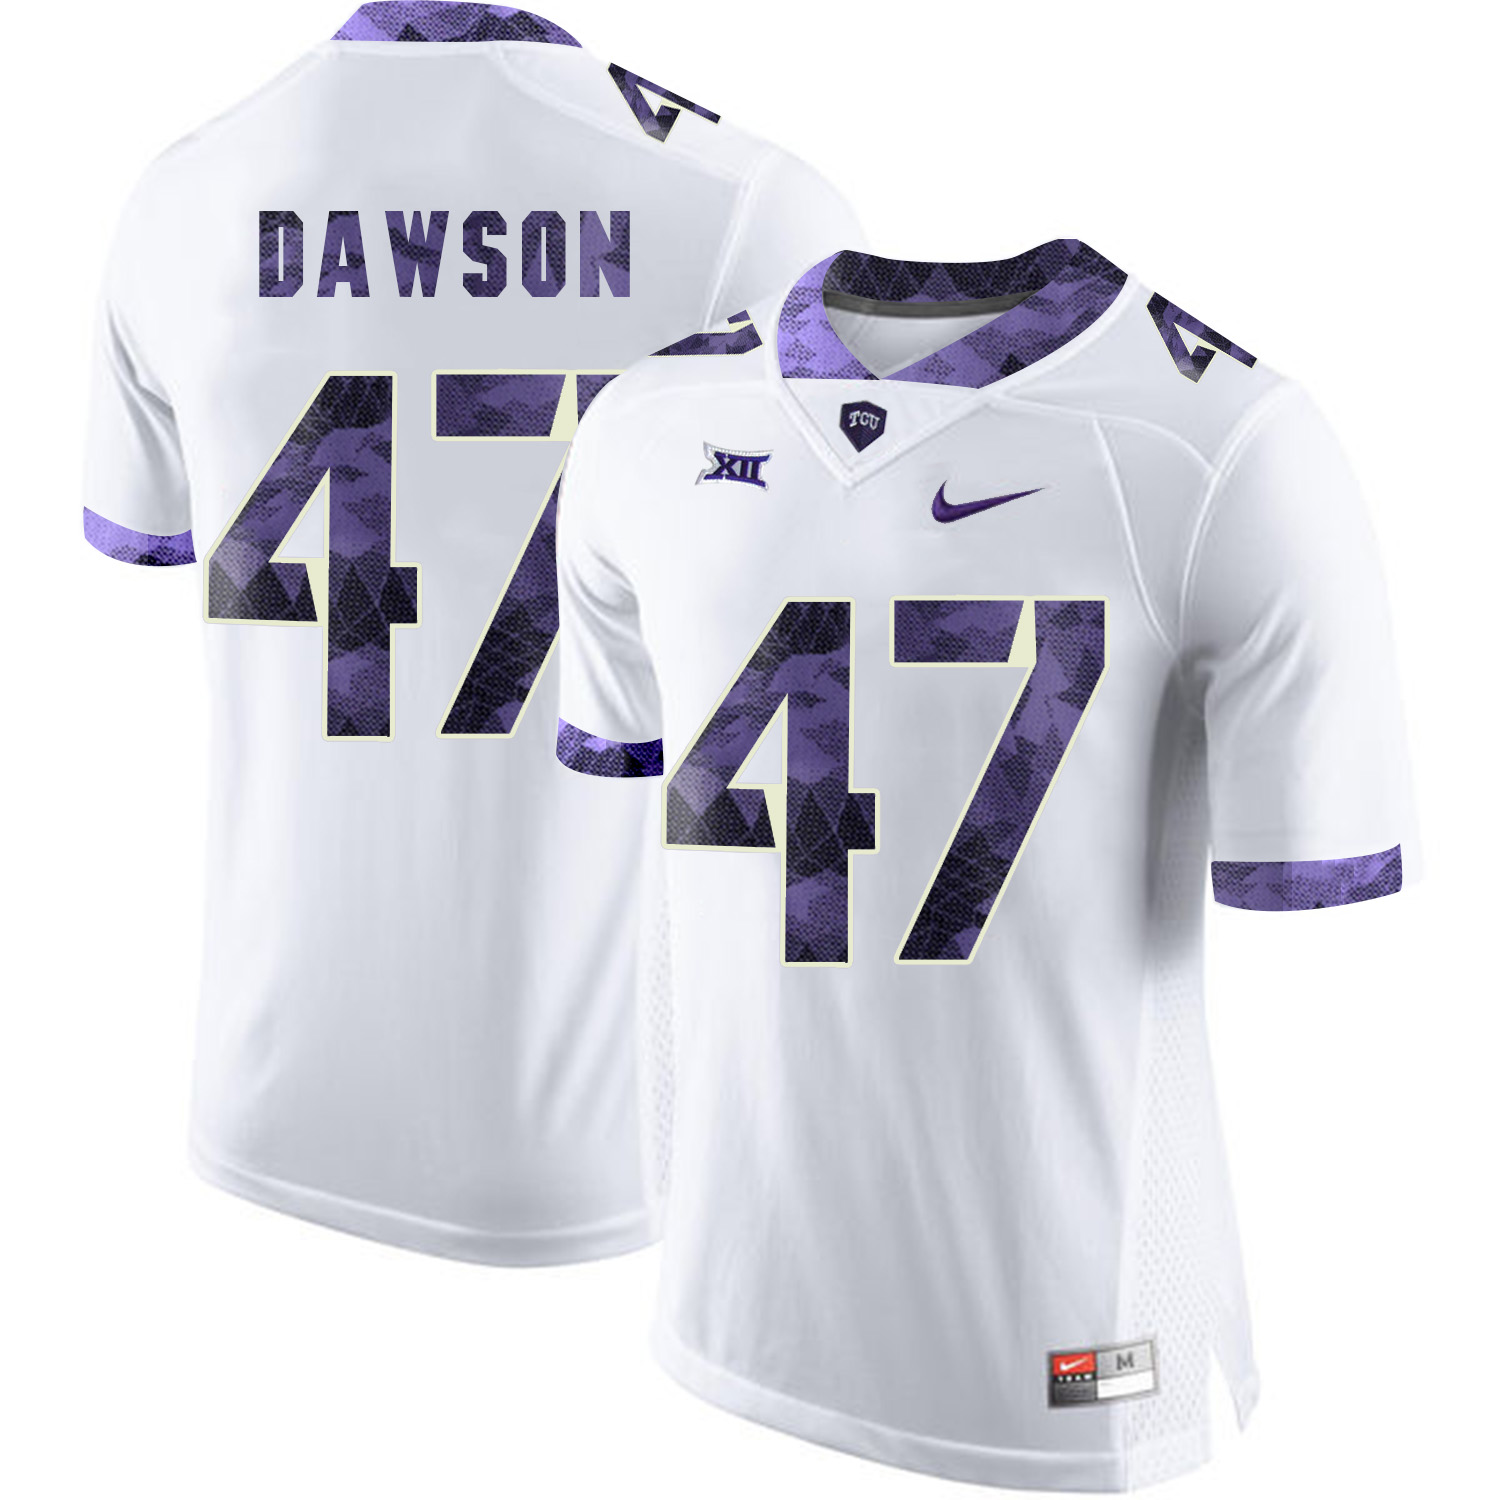 TCU Horned Frogs 47 P.J. Dawson White Print College Football Limited Jersey